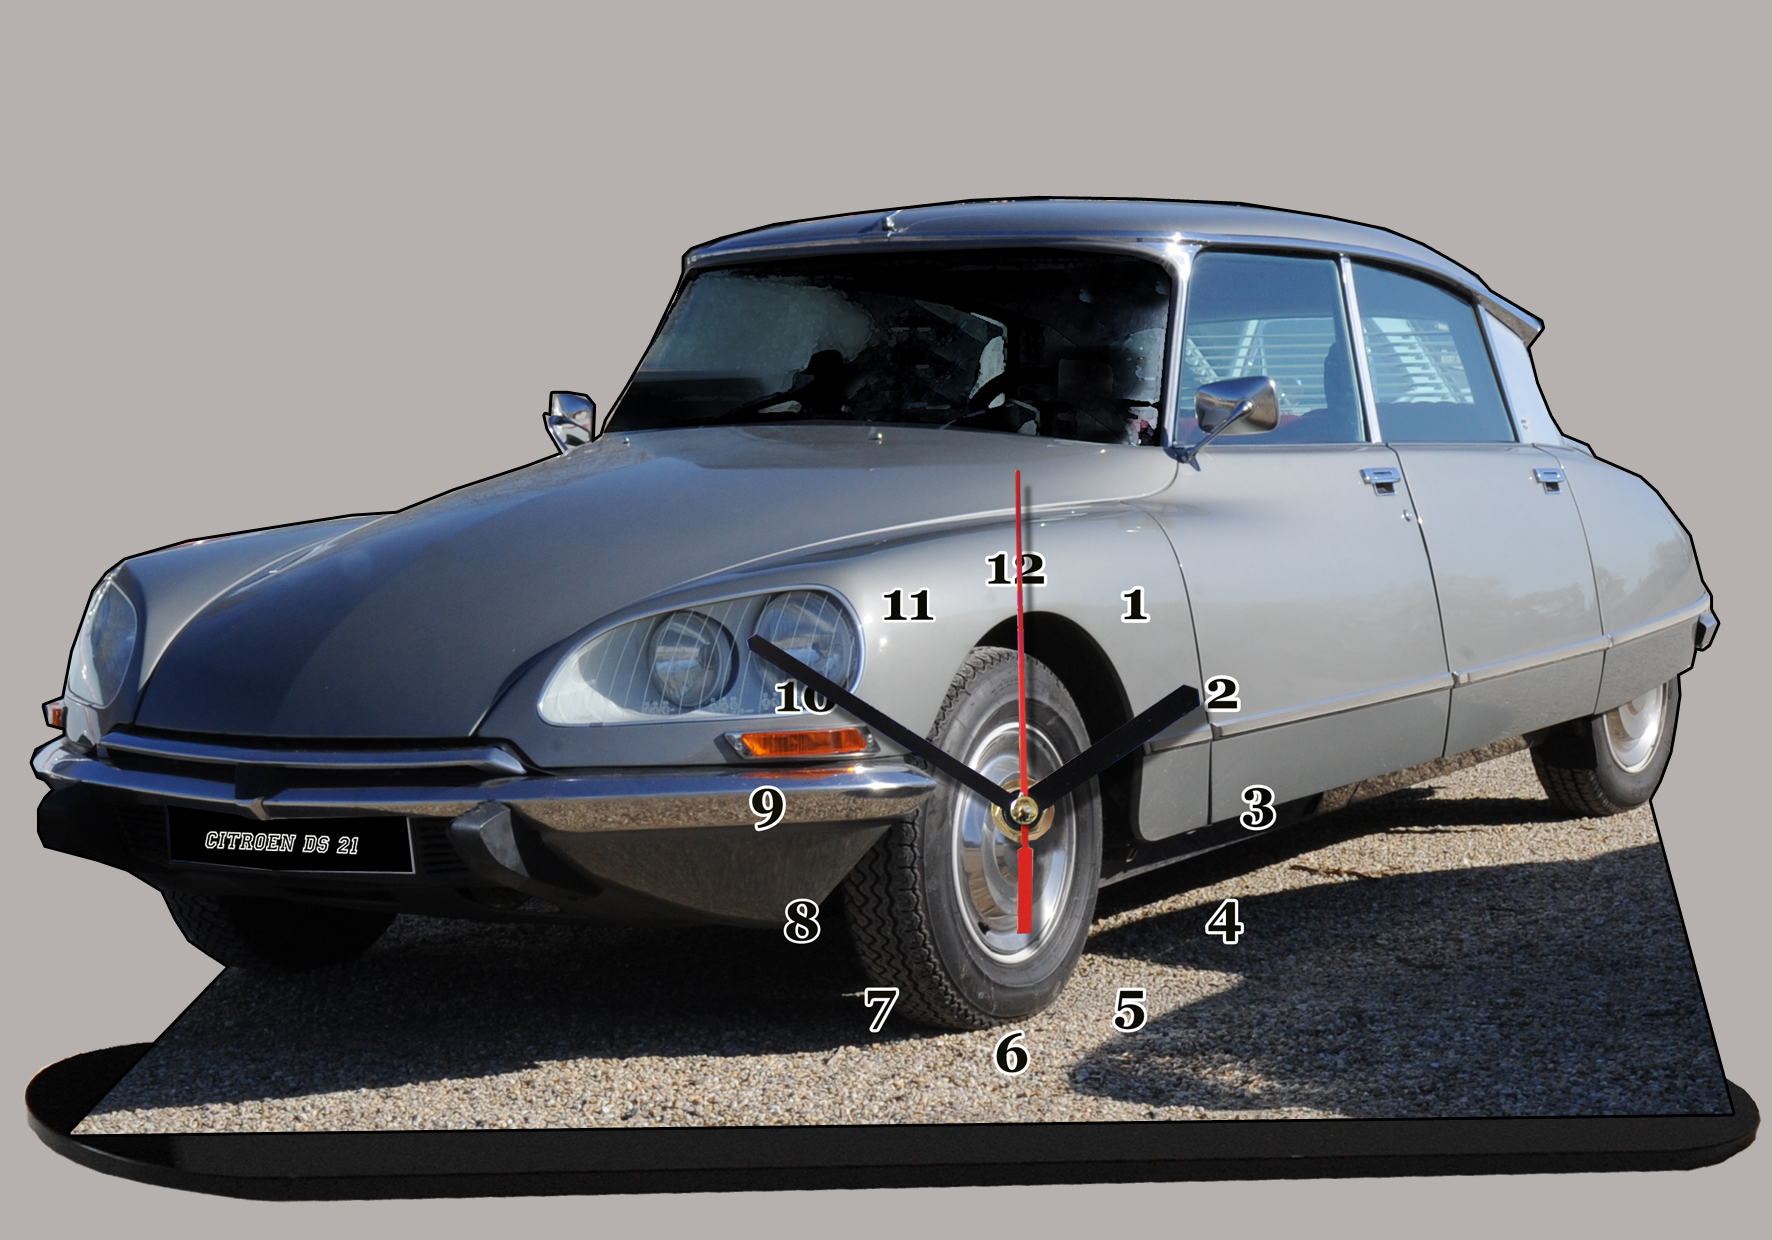 la celebre citroen ds 21 grise de f bertoni en miniature auto horloge. Black Bedroom Furniture Sets. Home Design Ideas